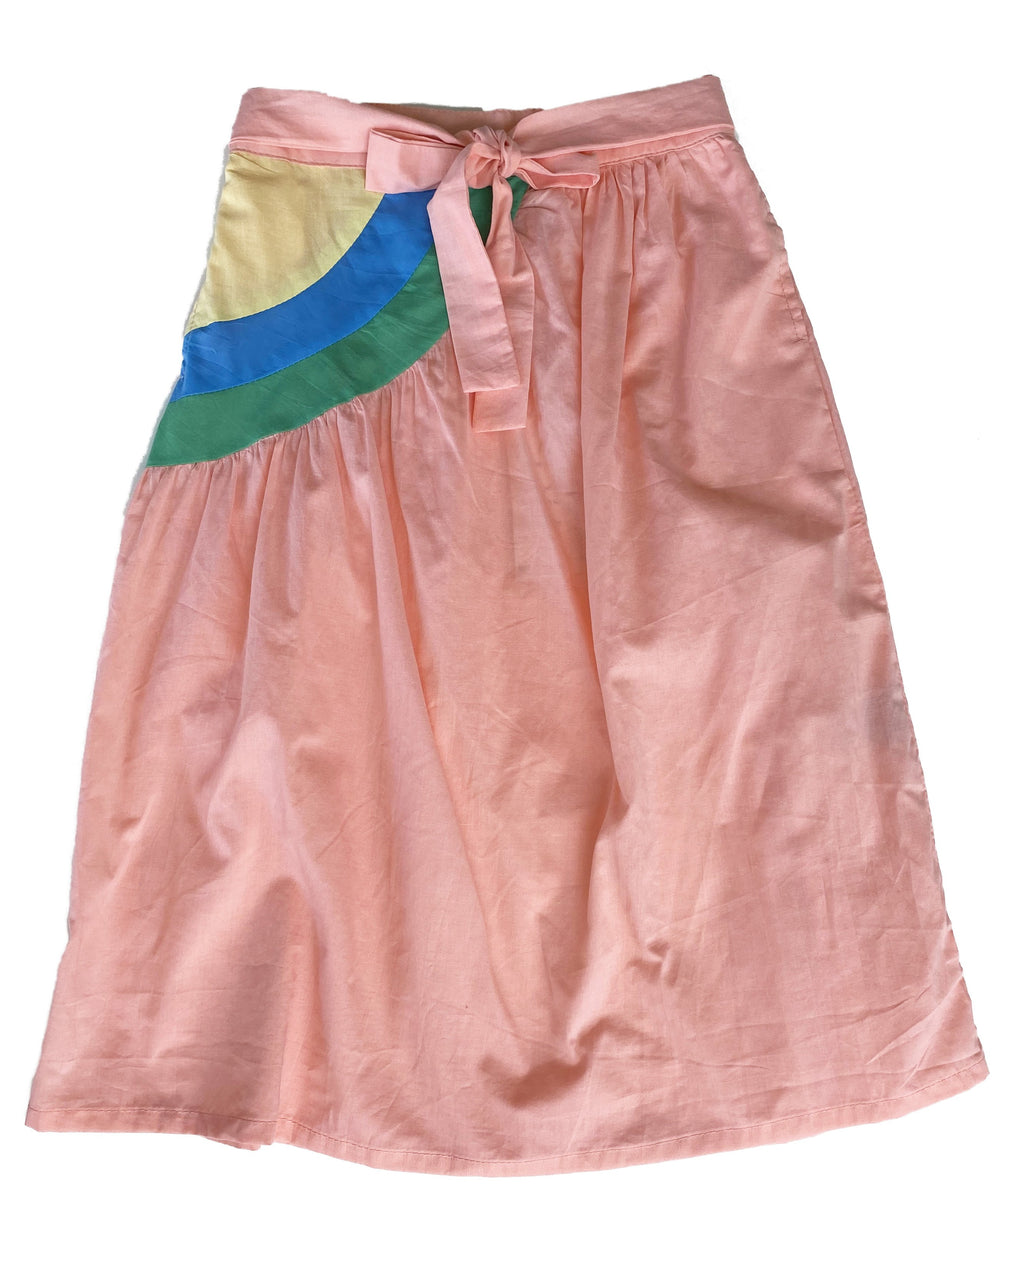 Bella & Lace Palm Bay Skirt - Sashimi